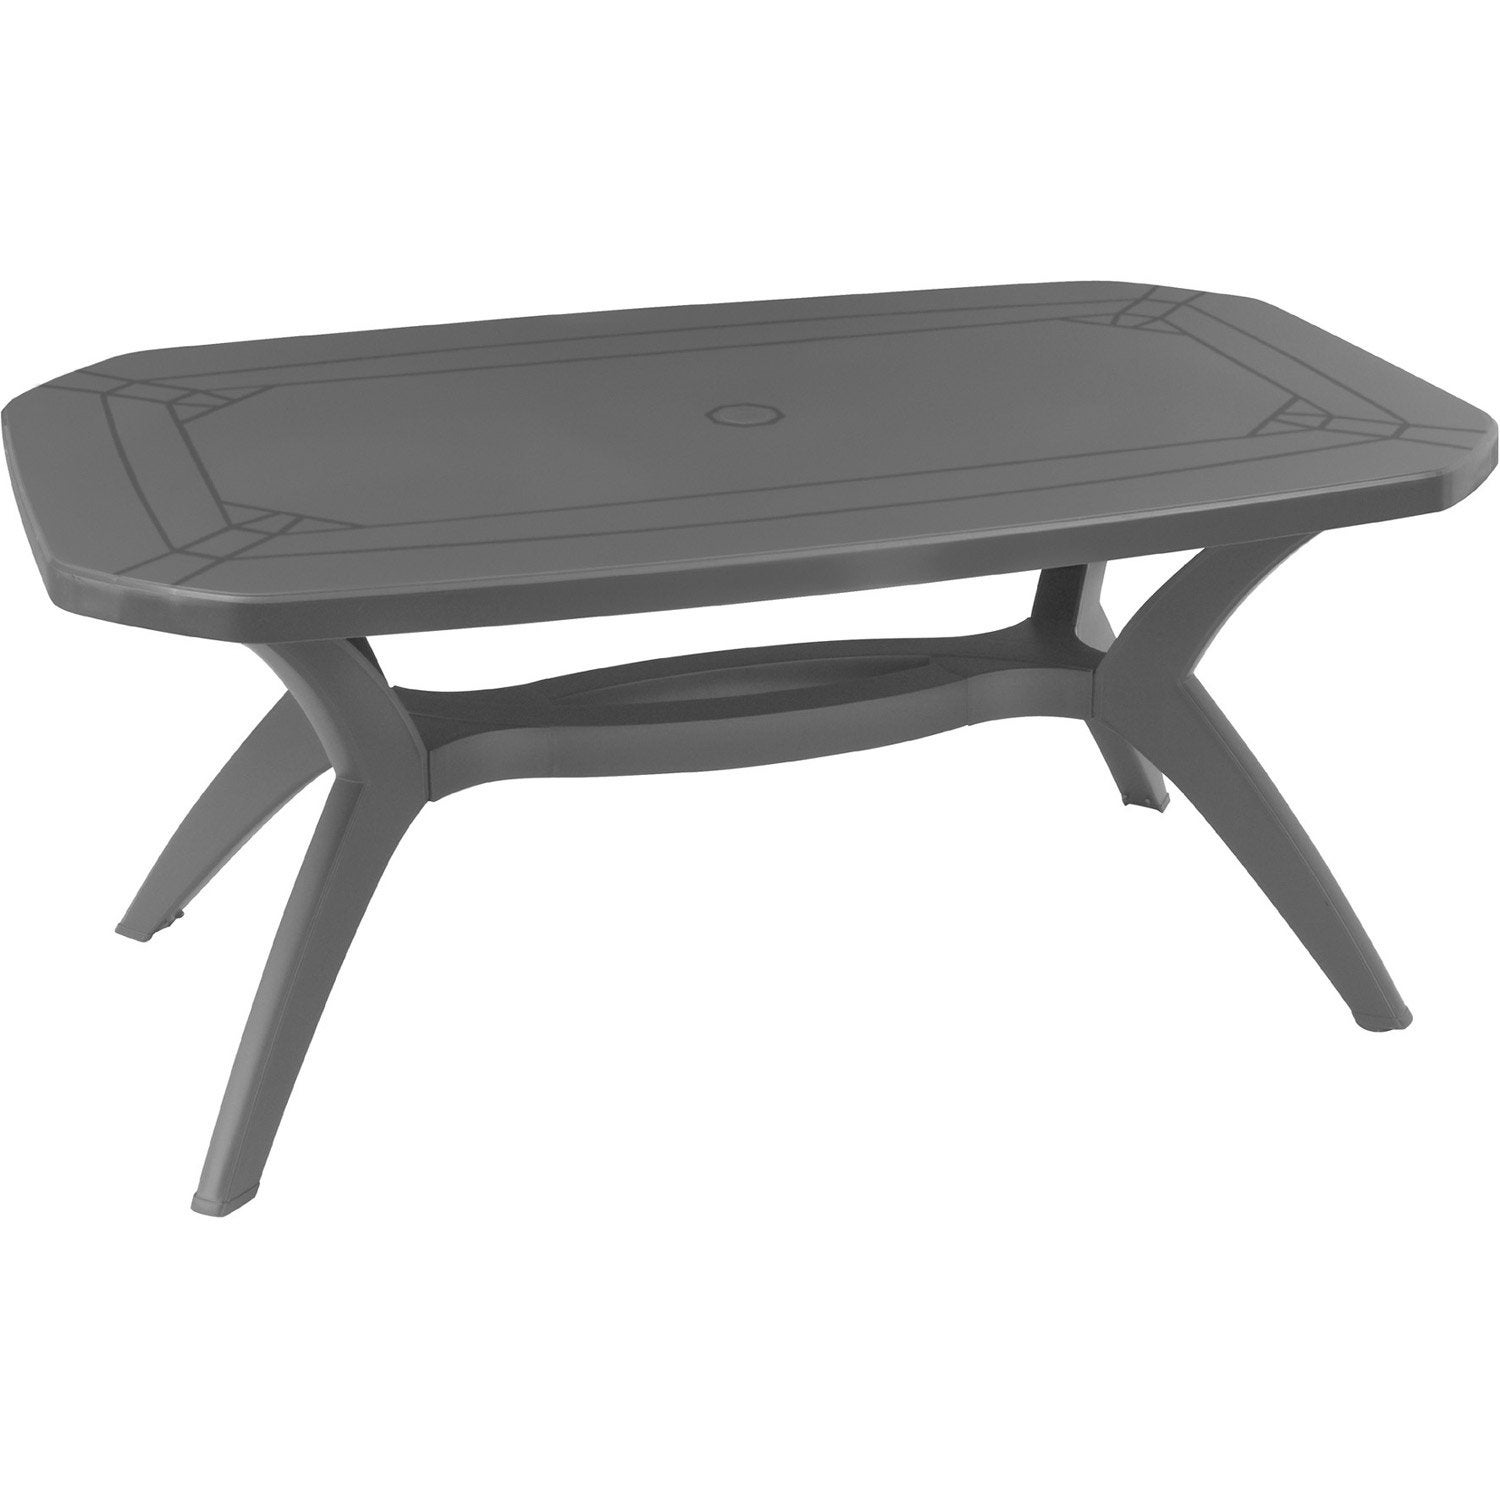 table de jardin rectangulaire ibiza grosfillex leroy merlin. Black Bedroom Furniture Sets. Home Design Ideas